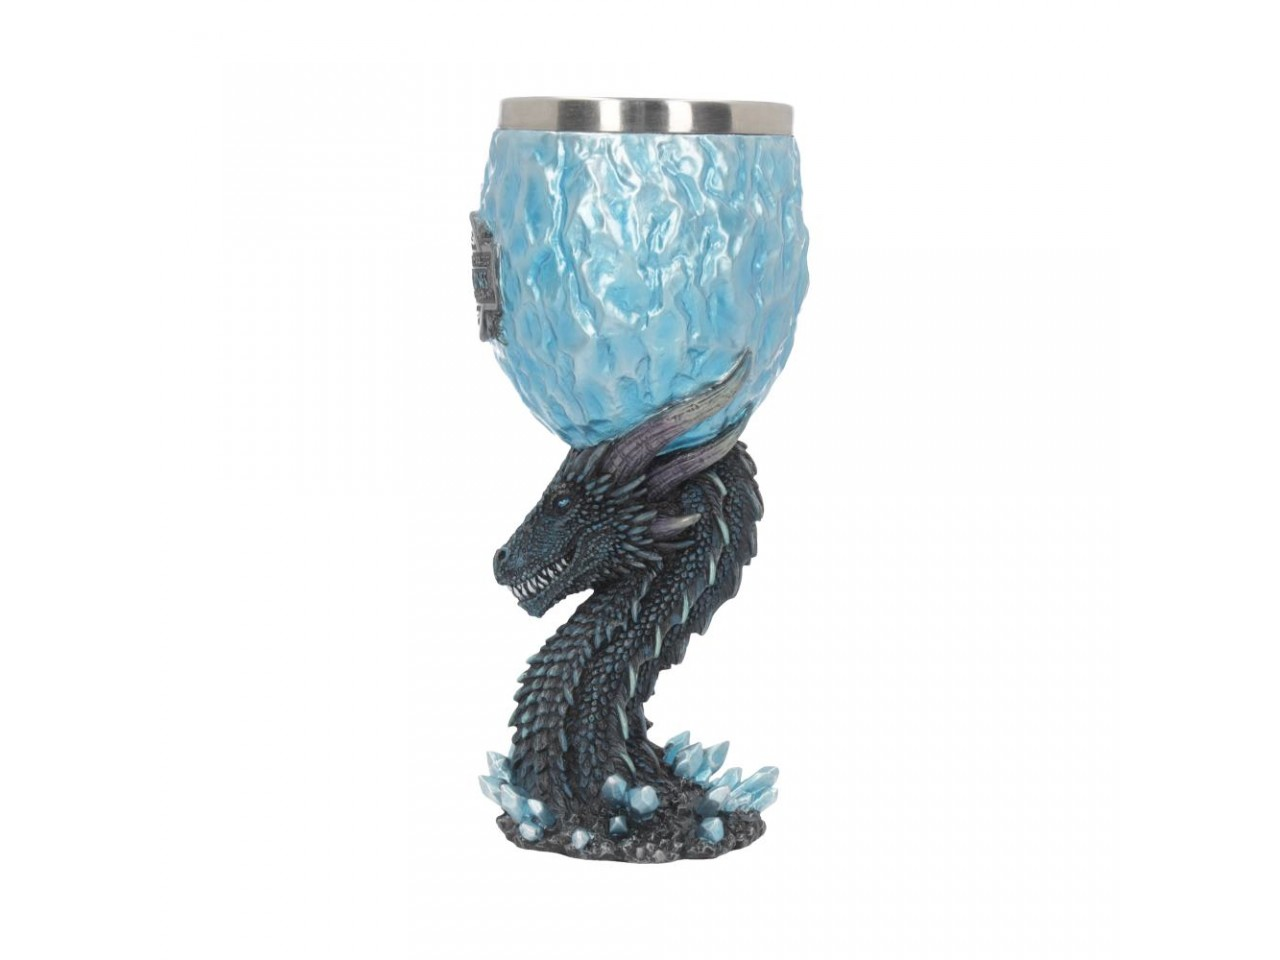 Game of Thrones - Boccale Viserion White Walker - Resina - Prodotto Ufficiale